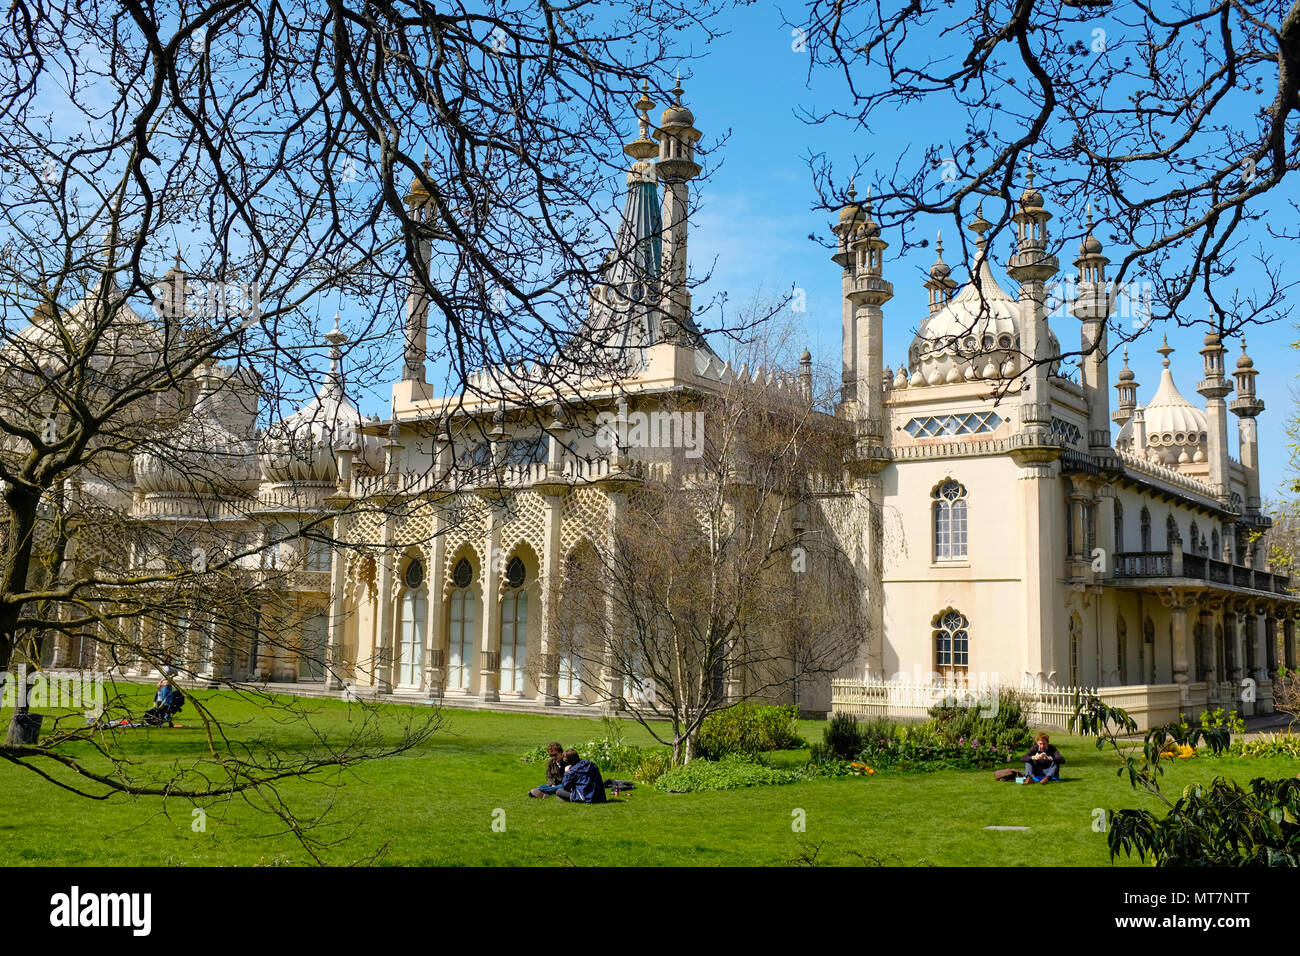 Brighton Pavilion, Brighton, East Sussex, England, UK - Stock Image